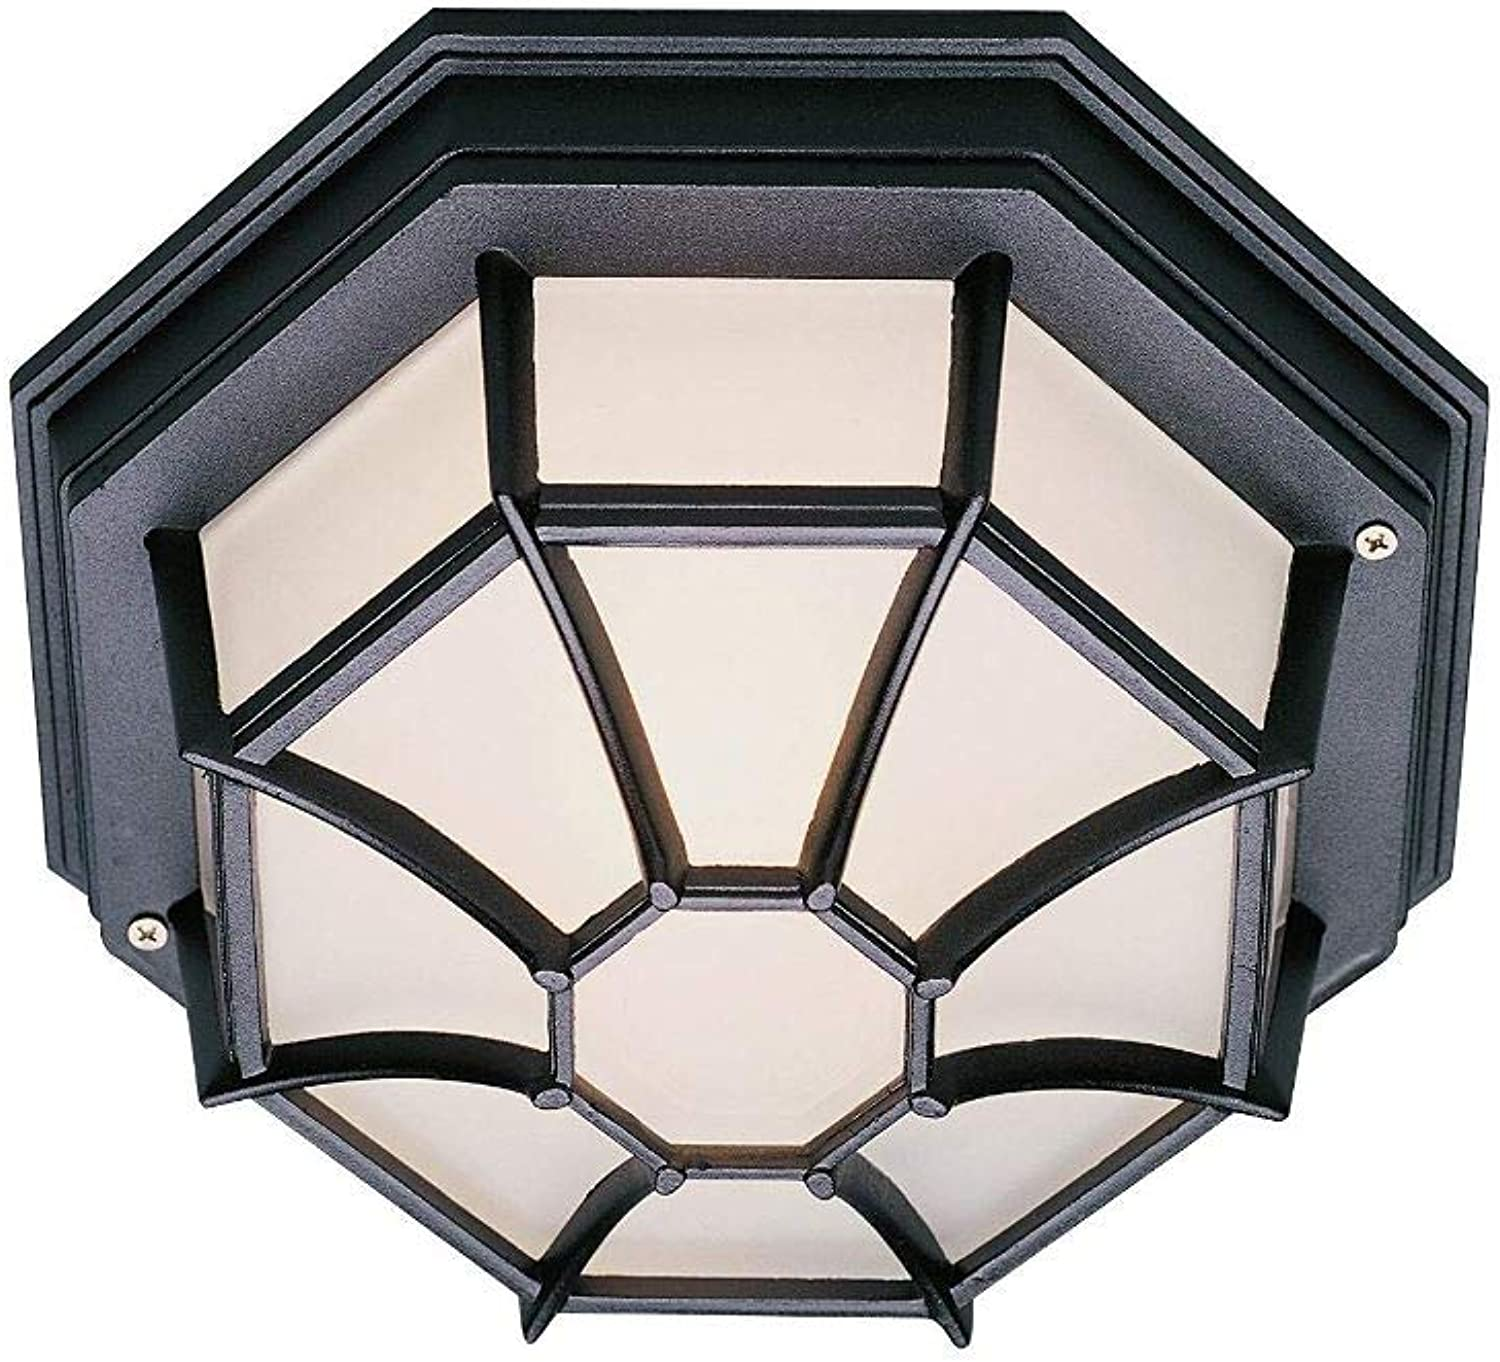 Green Beam Outdoor LED Ceiling Light Fixture, Porch Light Fixture, Patio Light Fixture, Outdoor Flush Mount Ceiling Light Fixture, 17W, 4000K Natural Light, Black Finish, 10.5